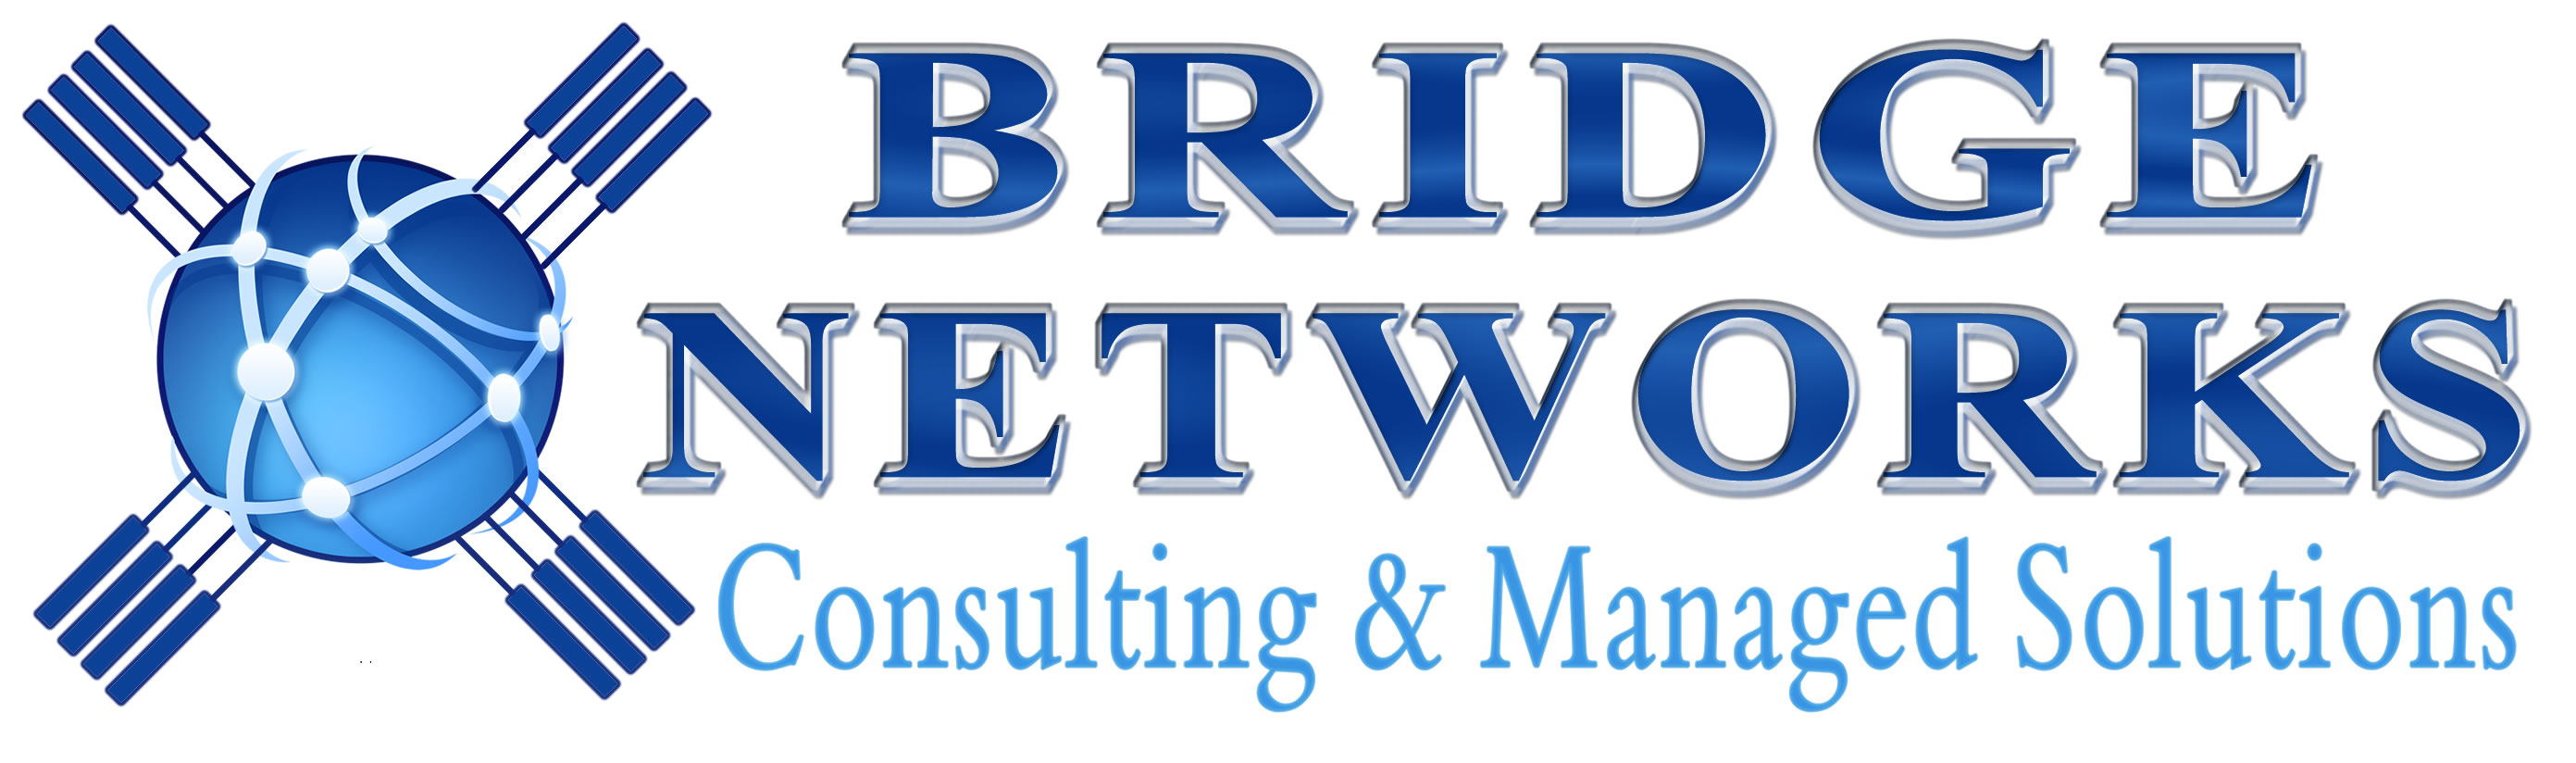 Bridge Networks